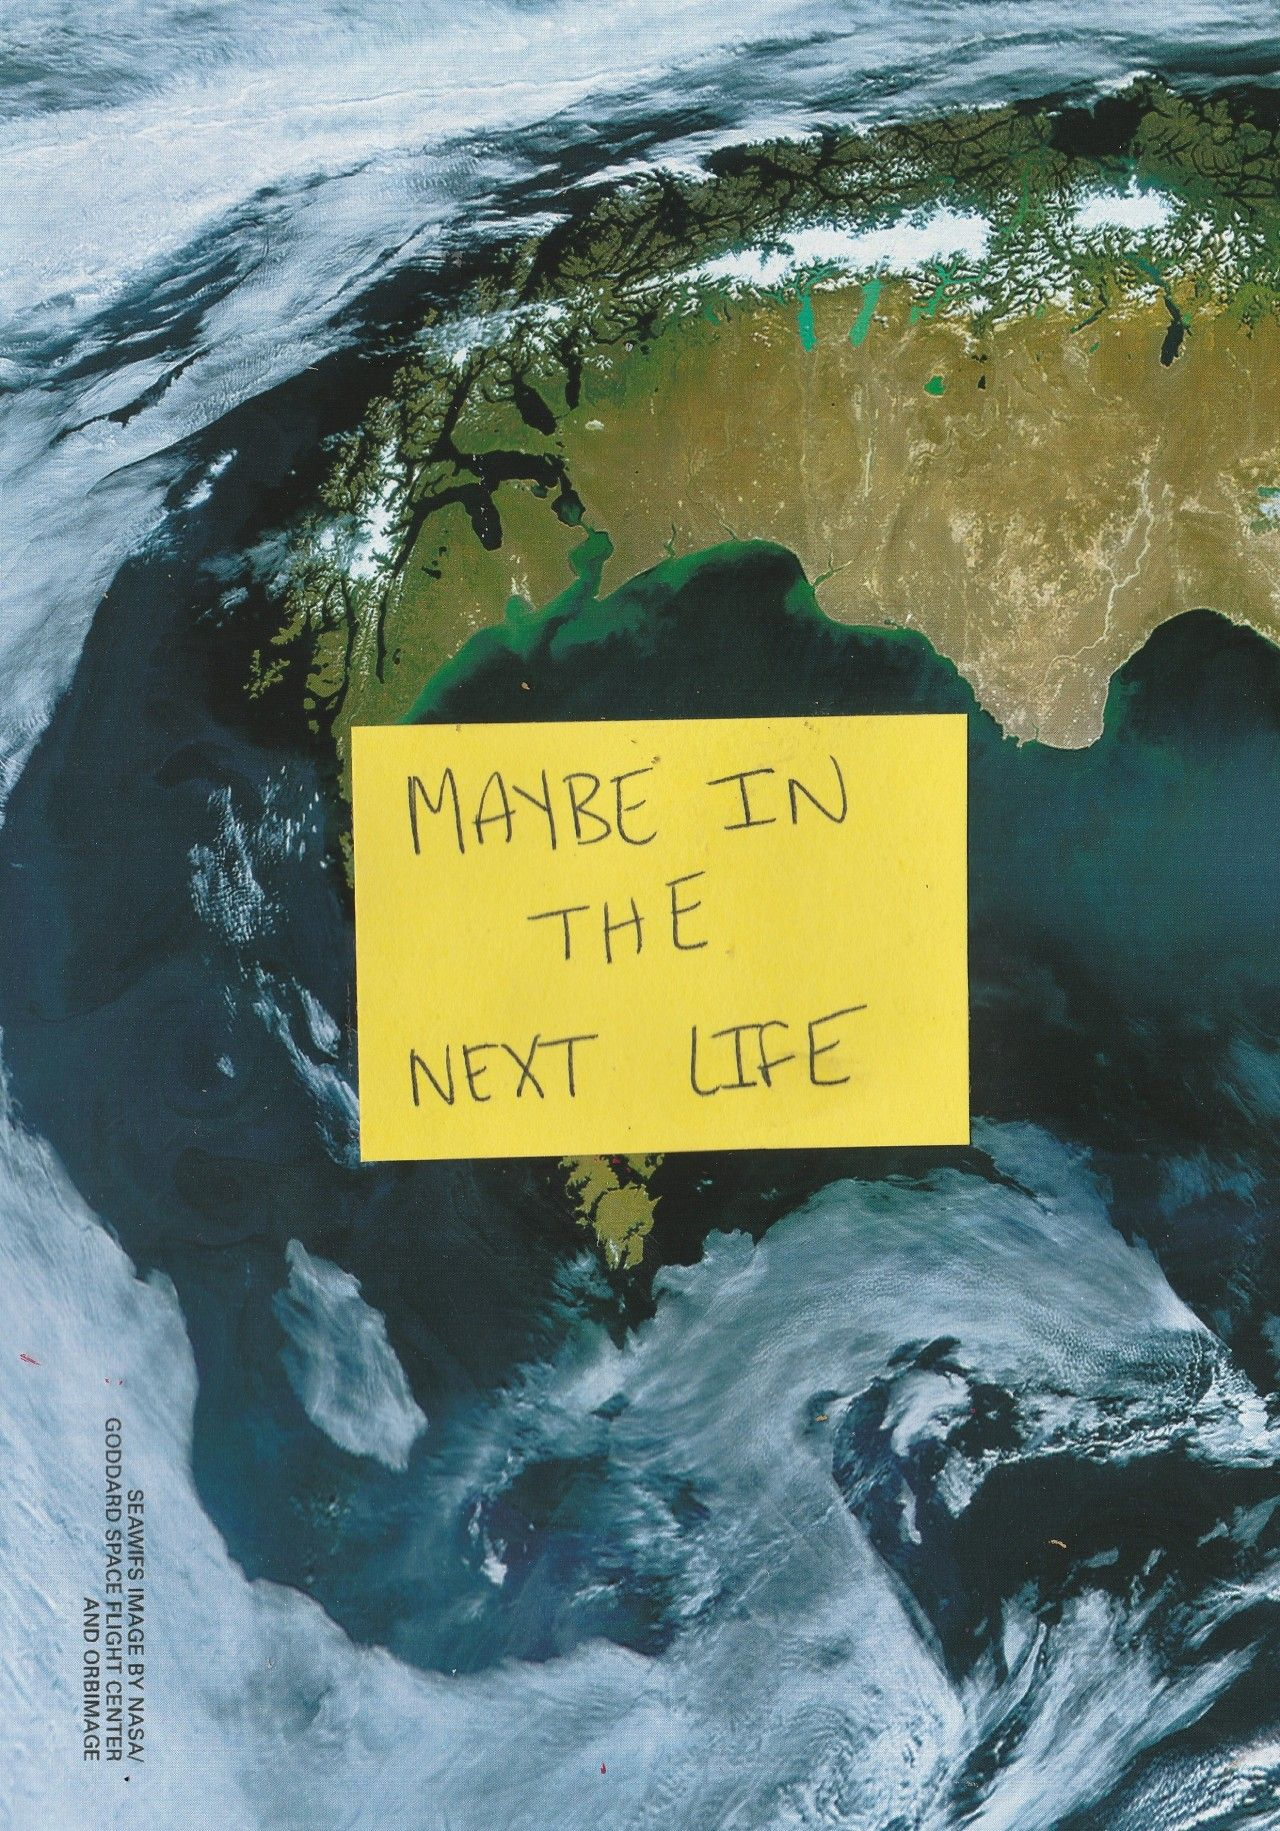 Maybe in the next life. Or the next.